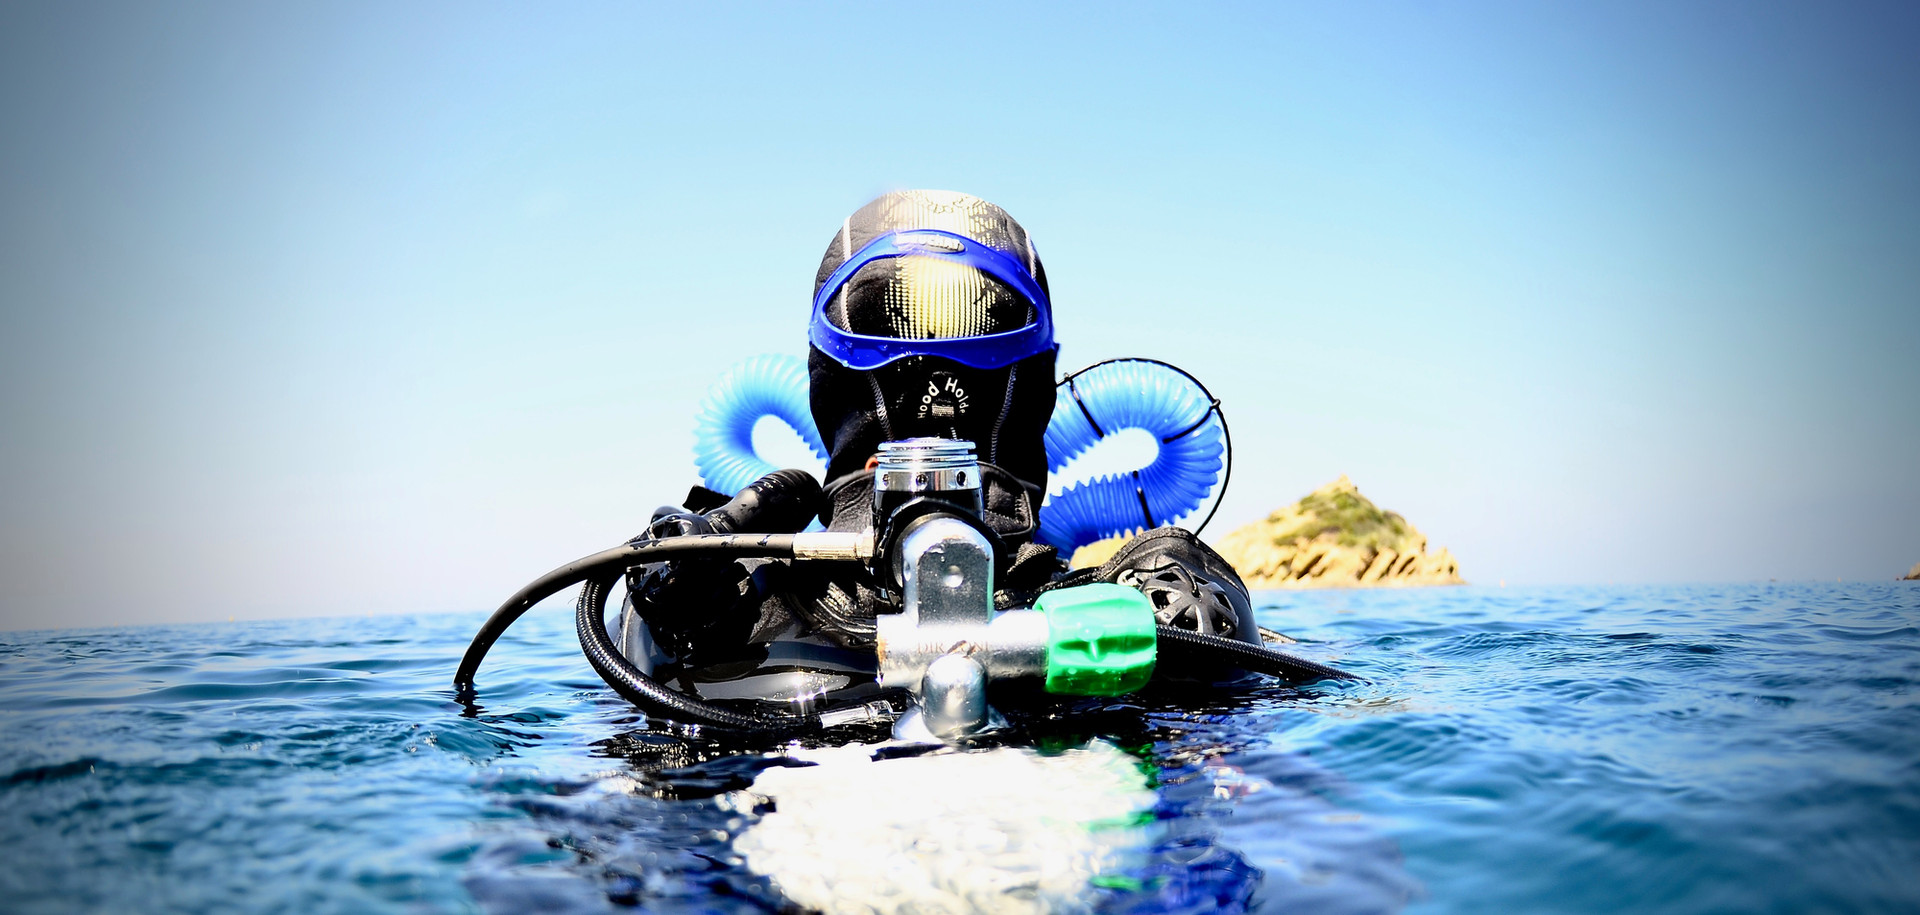 The Triton for recreational diving